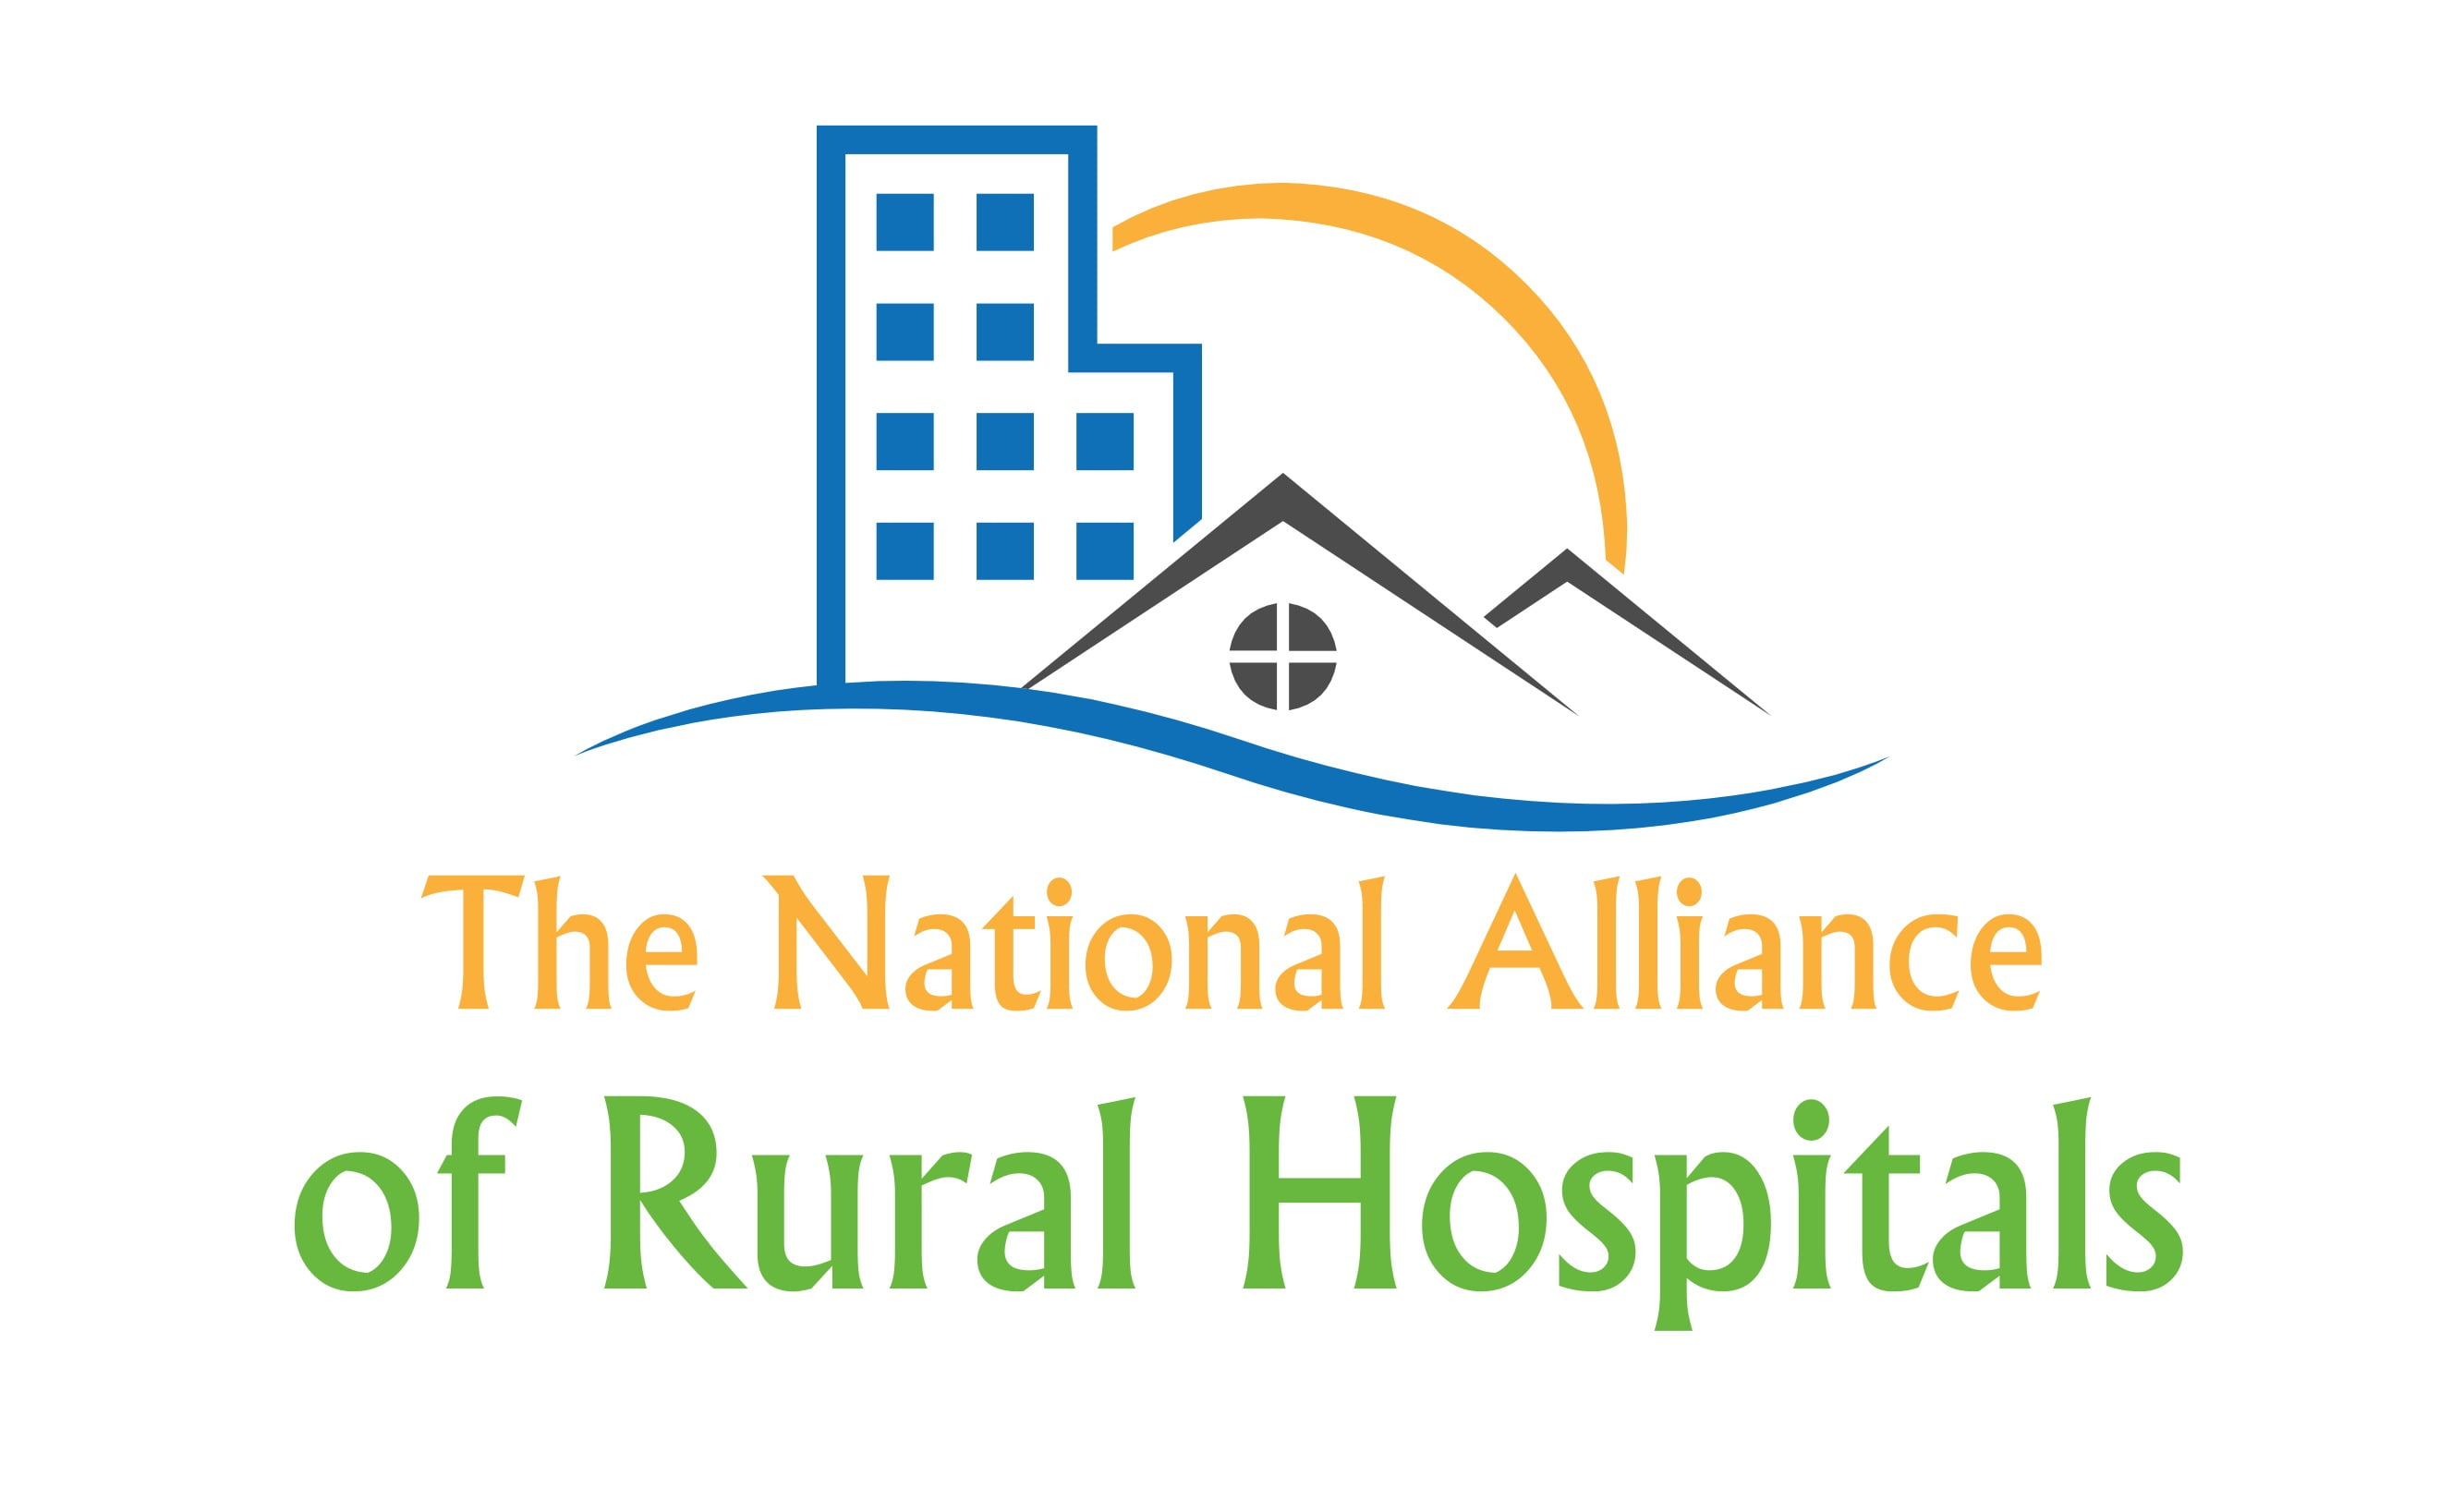 The Empower Group Sets 2018 Goals to Save More Rural Hospitals